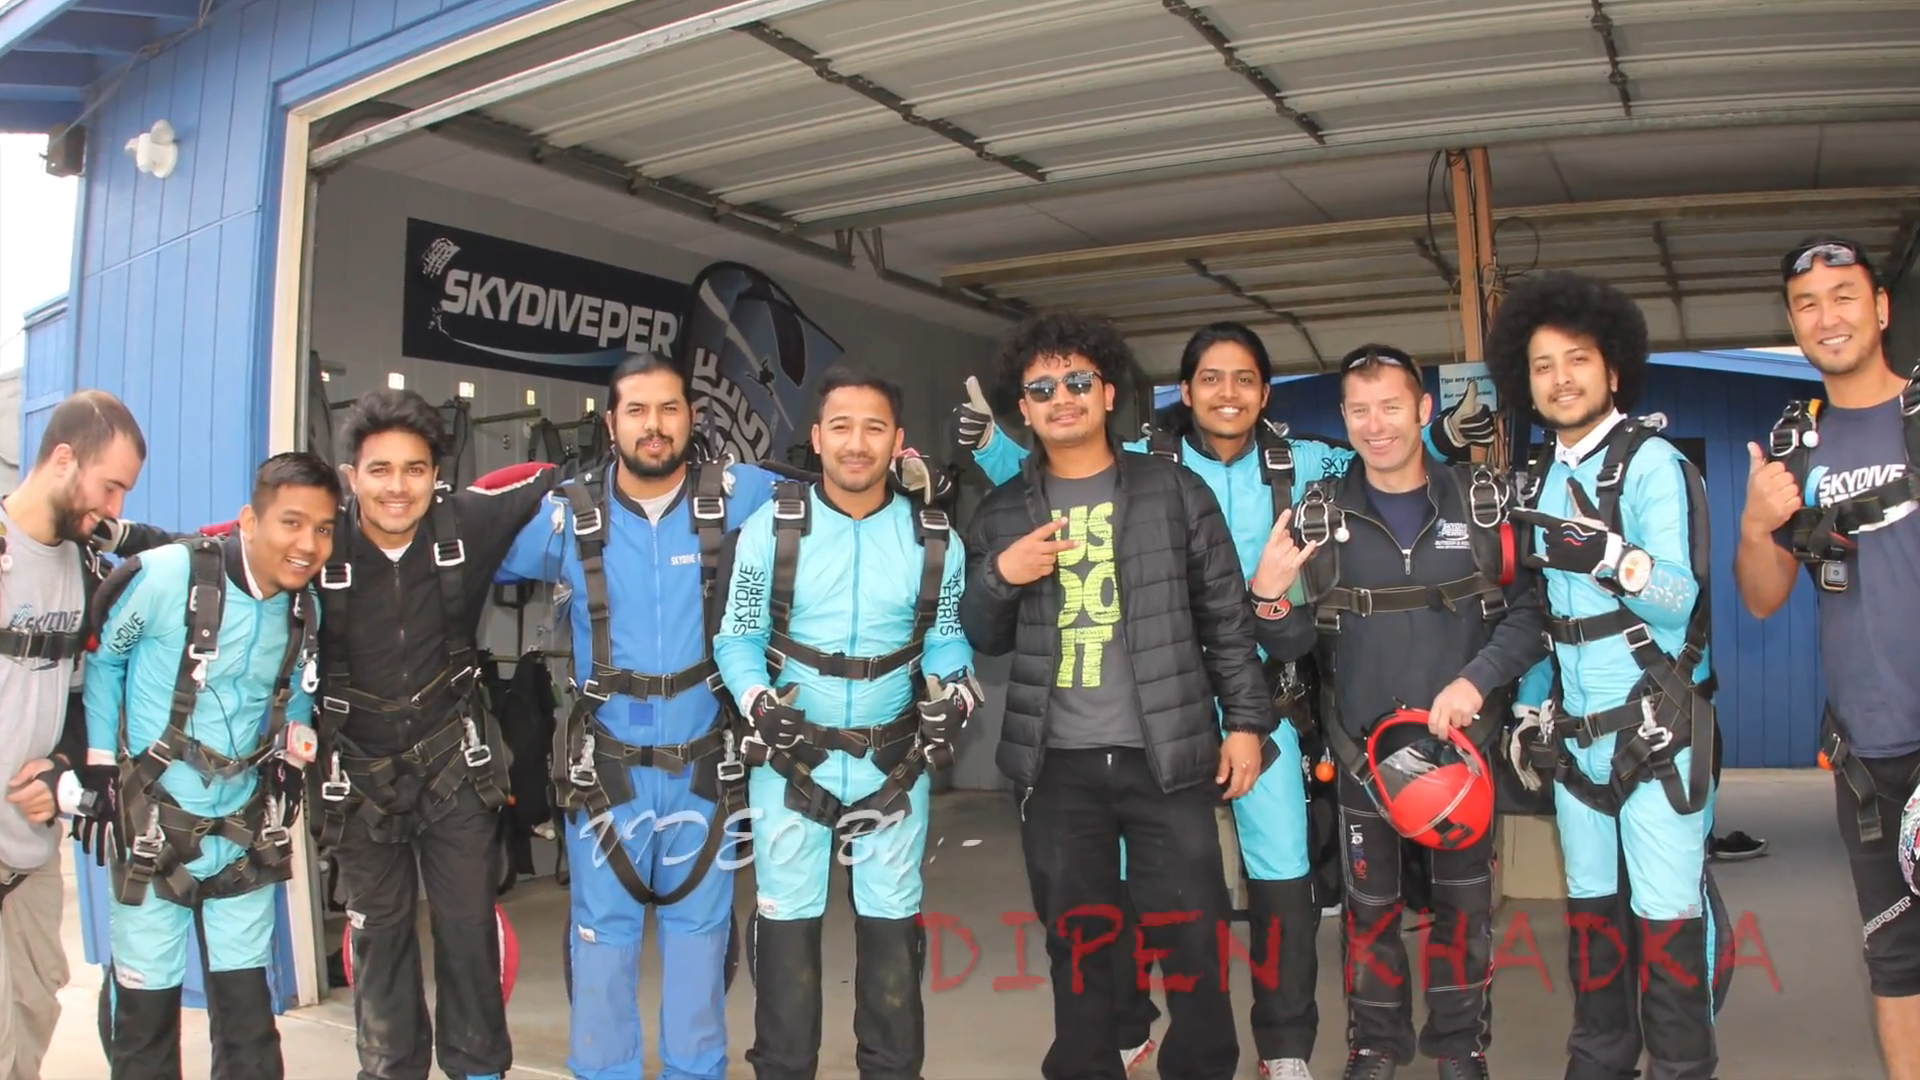 6 Freunde Skydiving Erfahrung in Los Angeles, USA | skyxtreme TV